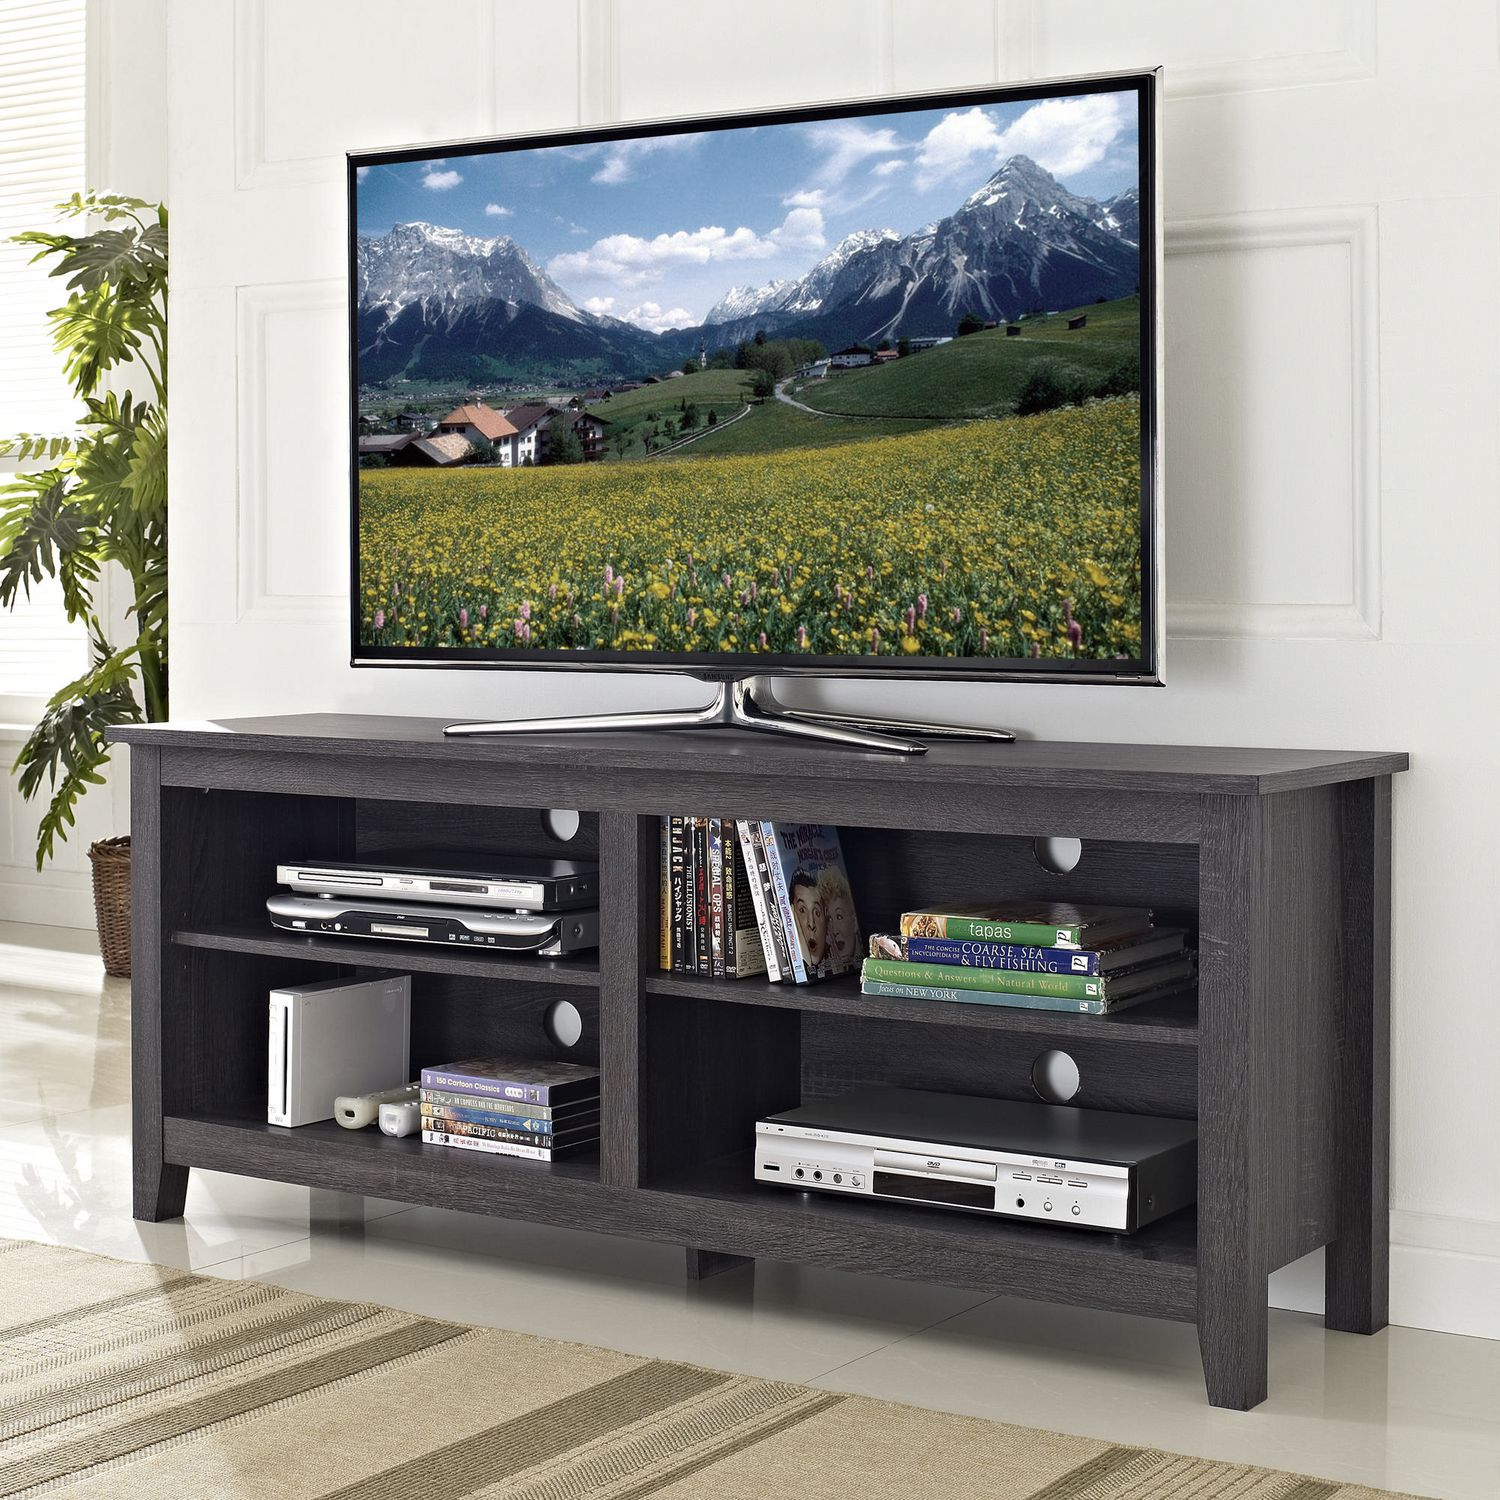 simpli living decorating ideas small room for of elegant cottage shaker stand home new tv bedrooms